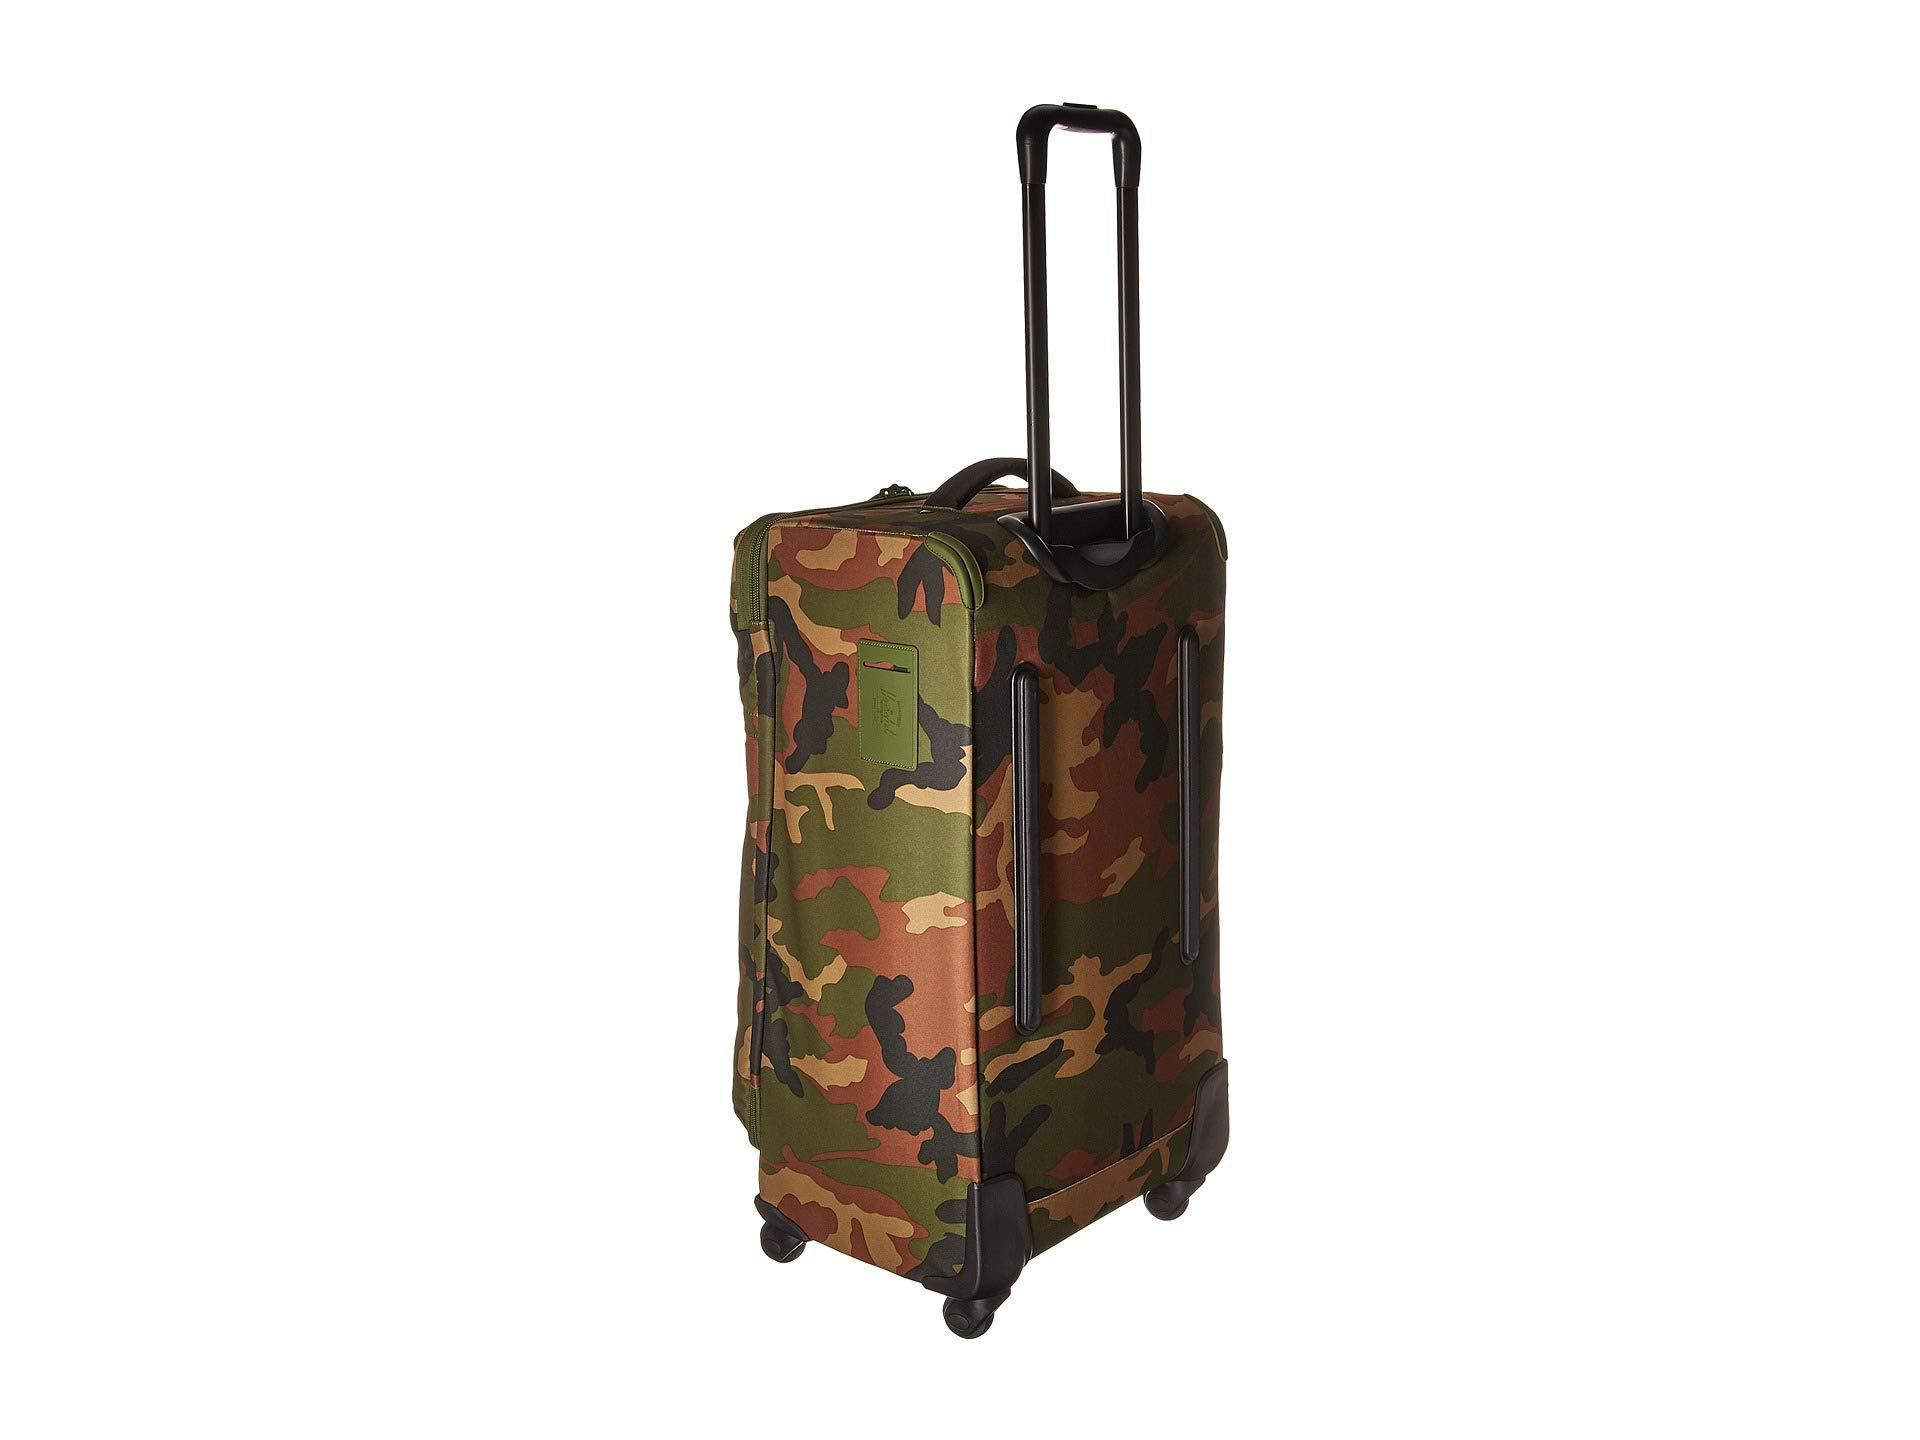 Herschel Supply Co. - Green Highland Medium (frog Camo) Luggage for Men -.  View fullscreen 4bba5ba5c1c21